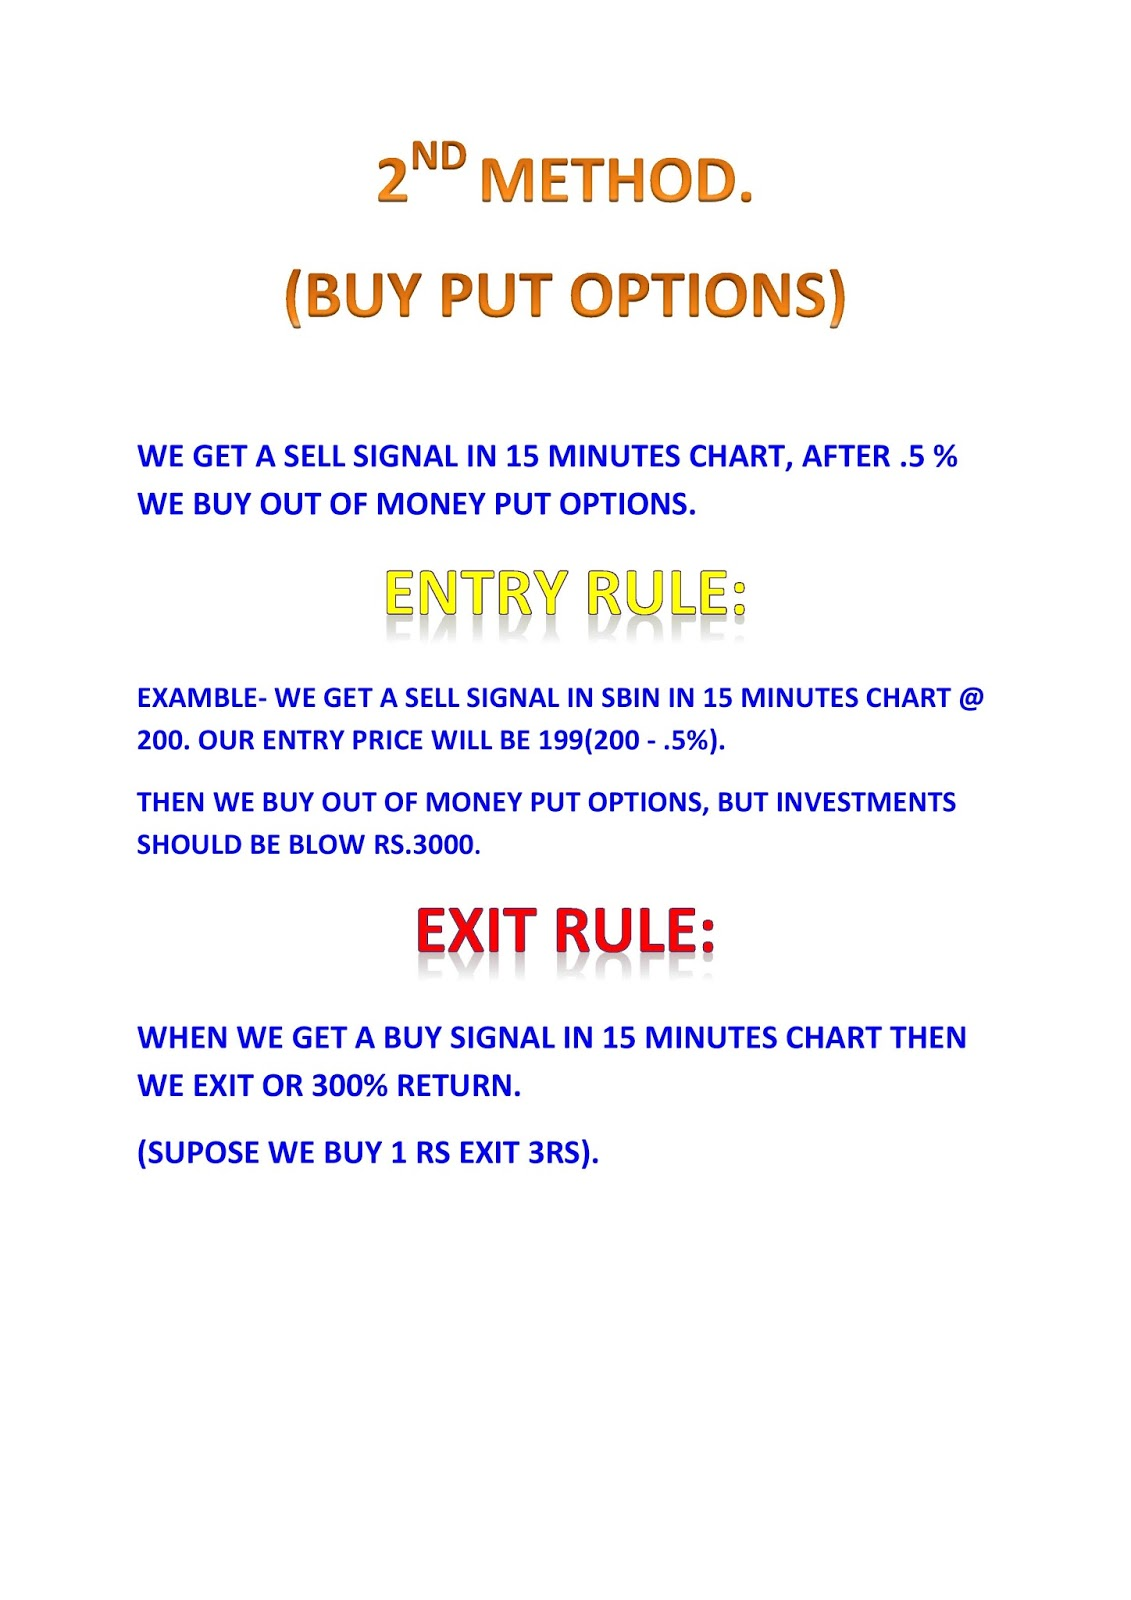 Covered call option trading strategies